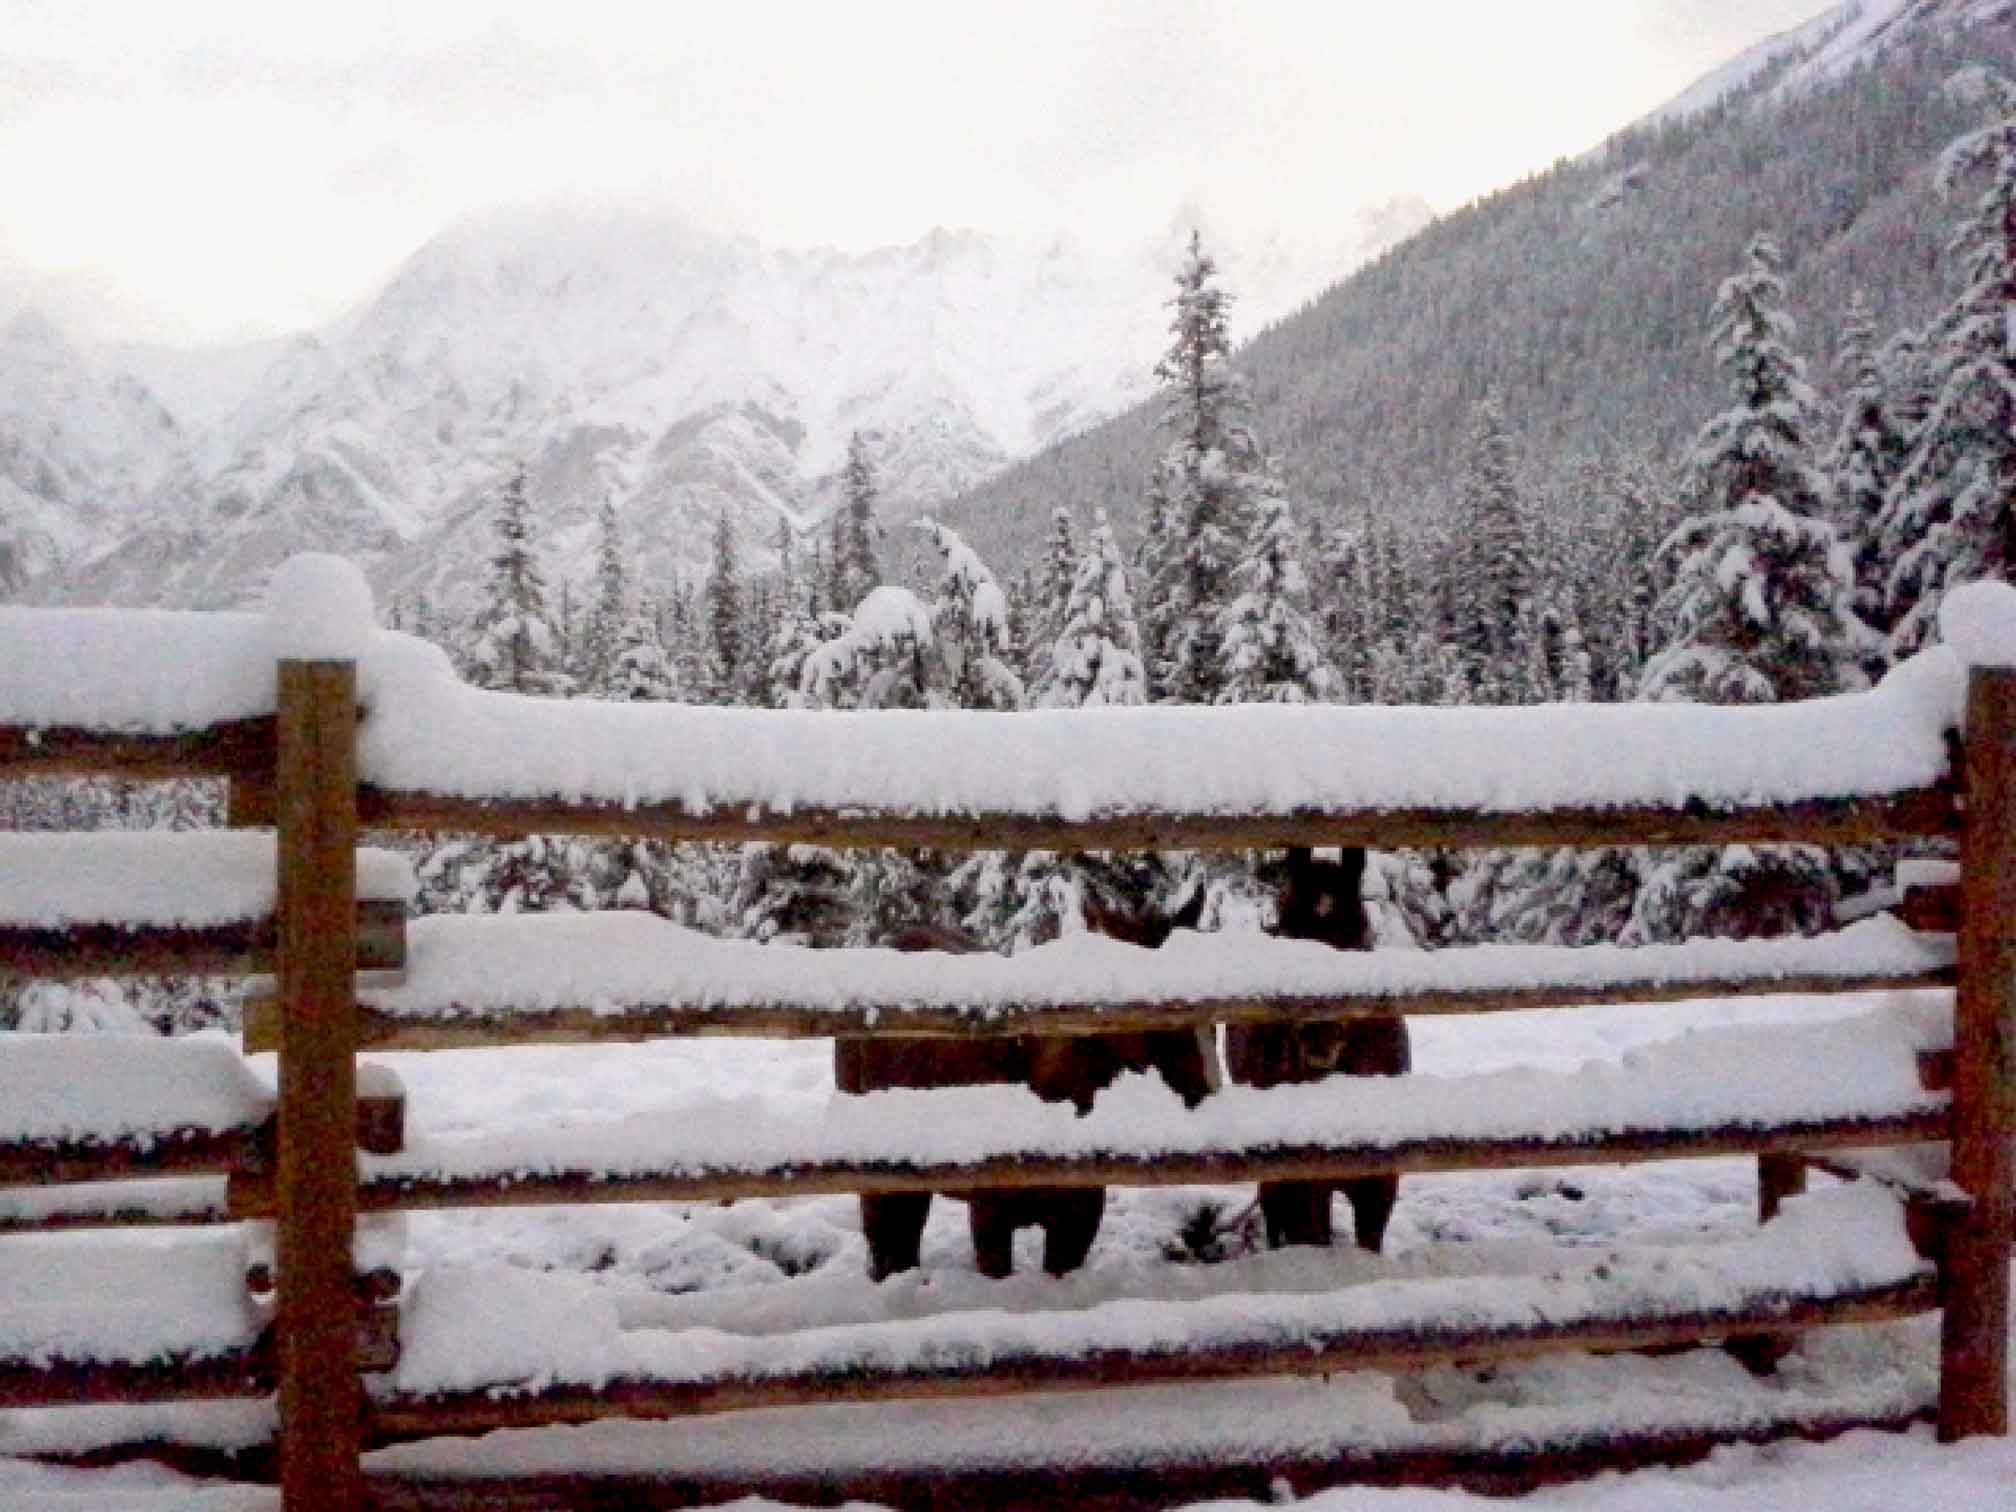 Deep snow from an August snowstorm in the backcountry of the Canadian Rockies